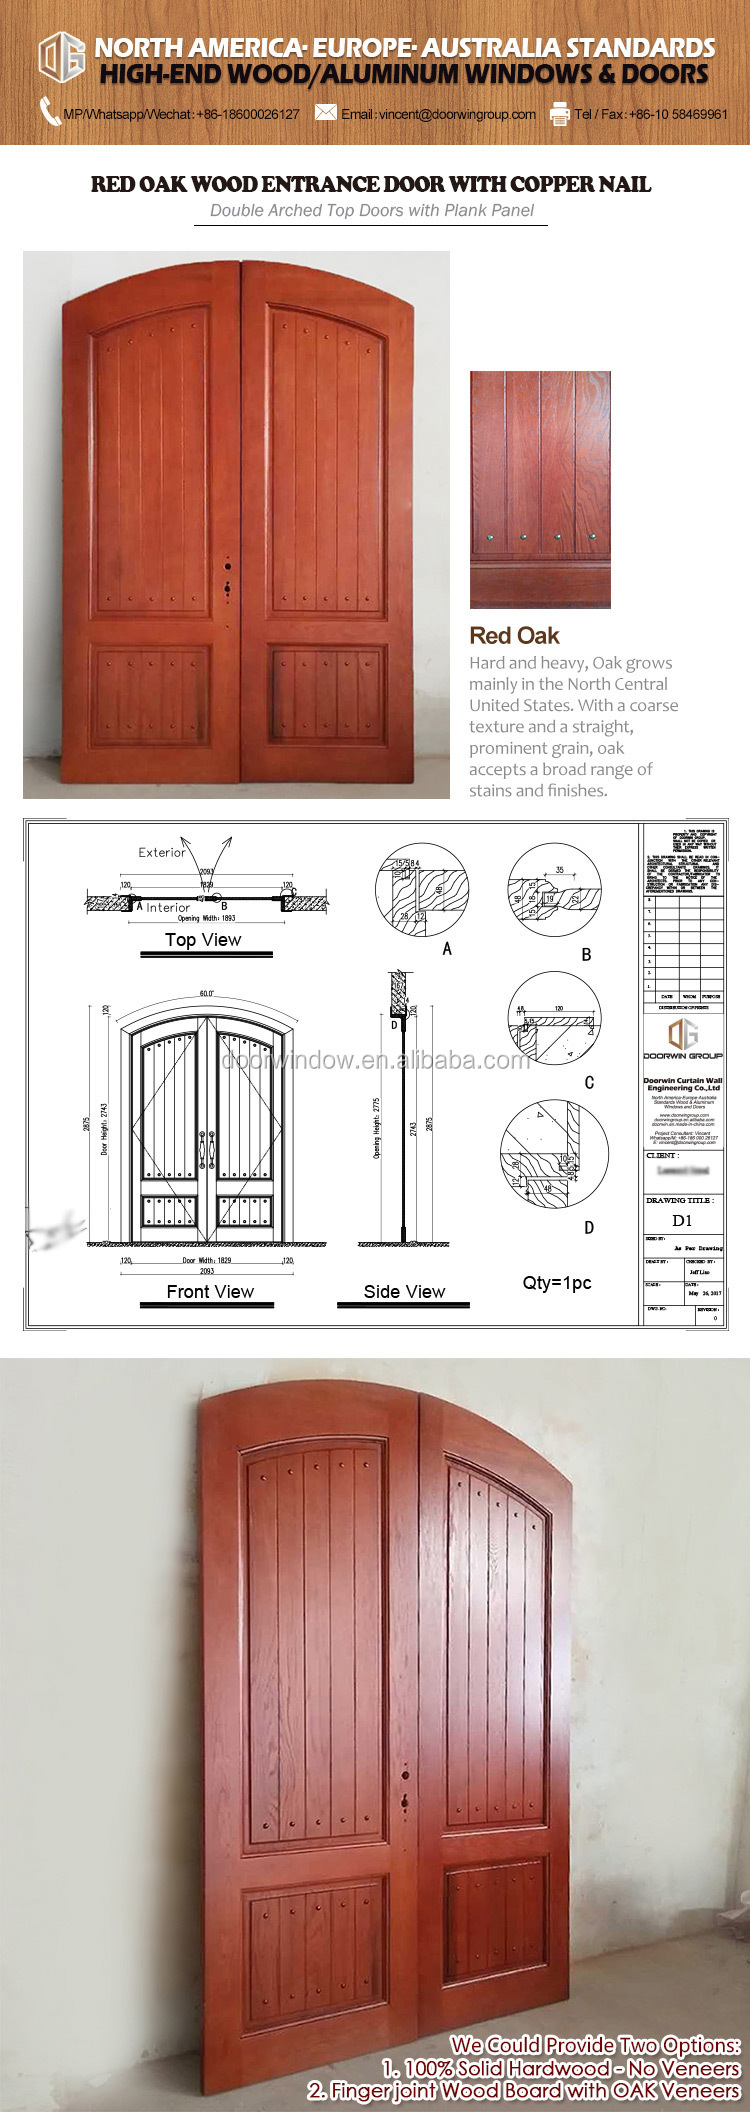 100% Solid Red Oak Wood Round Top Arch Design Double Entry Door